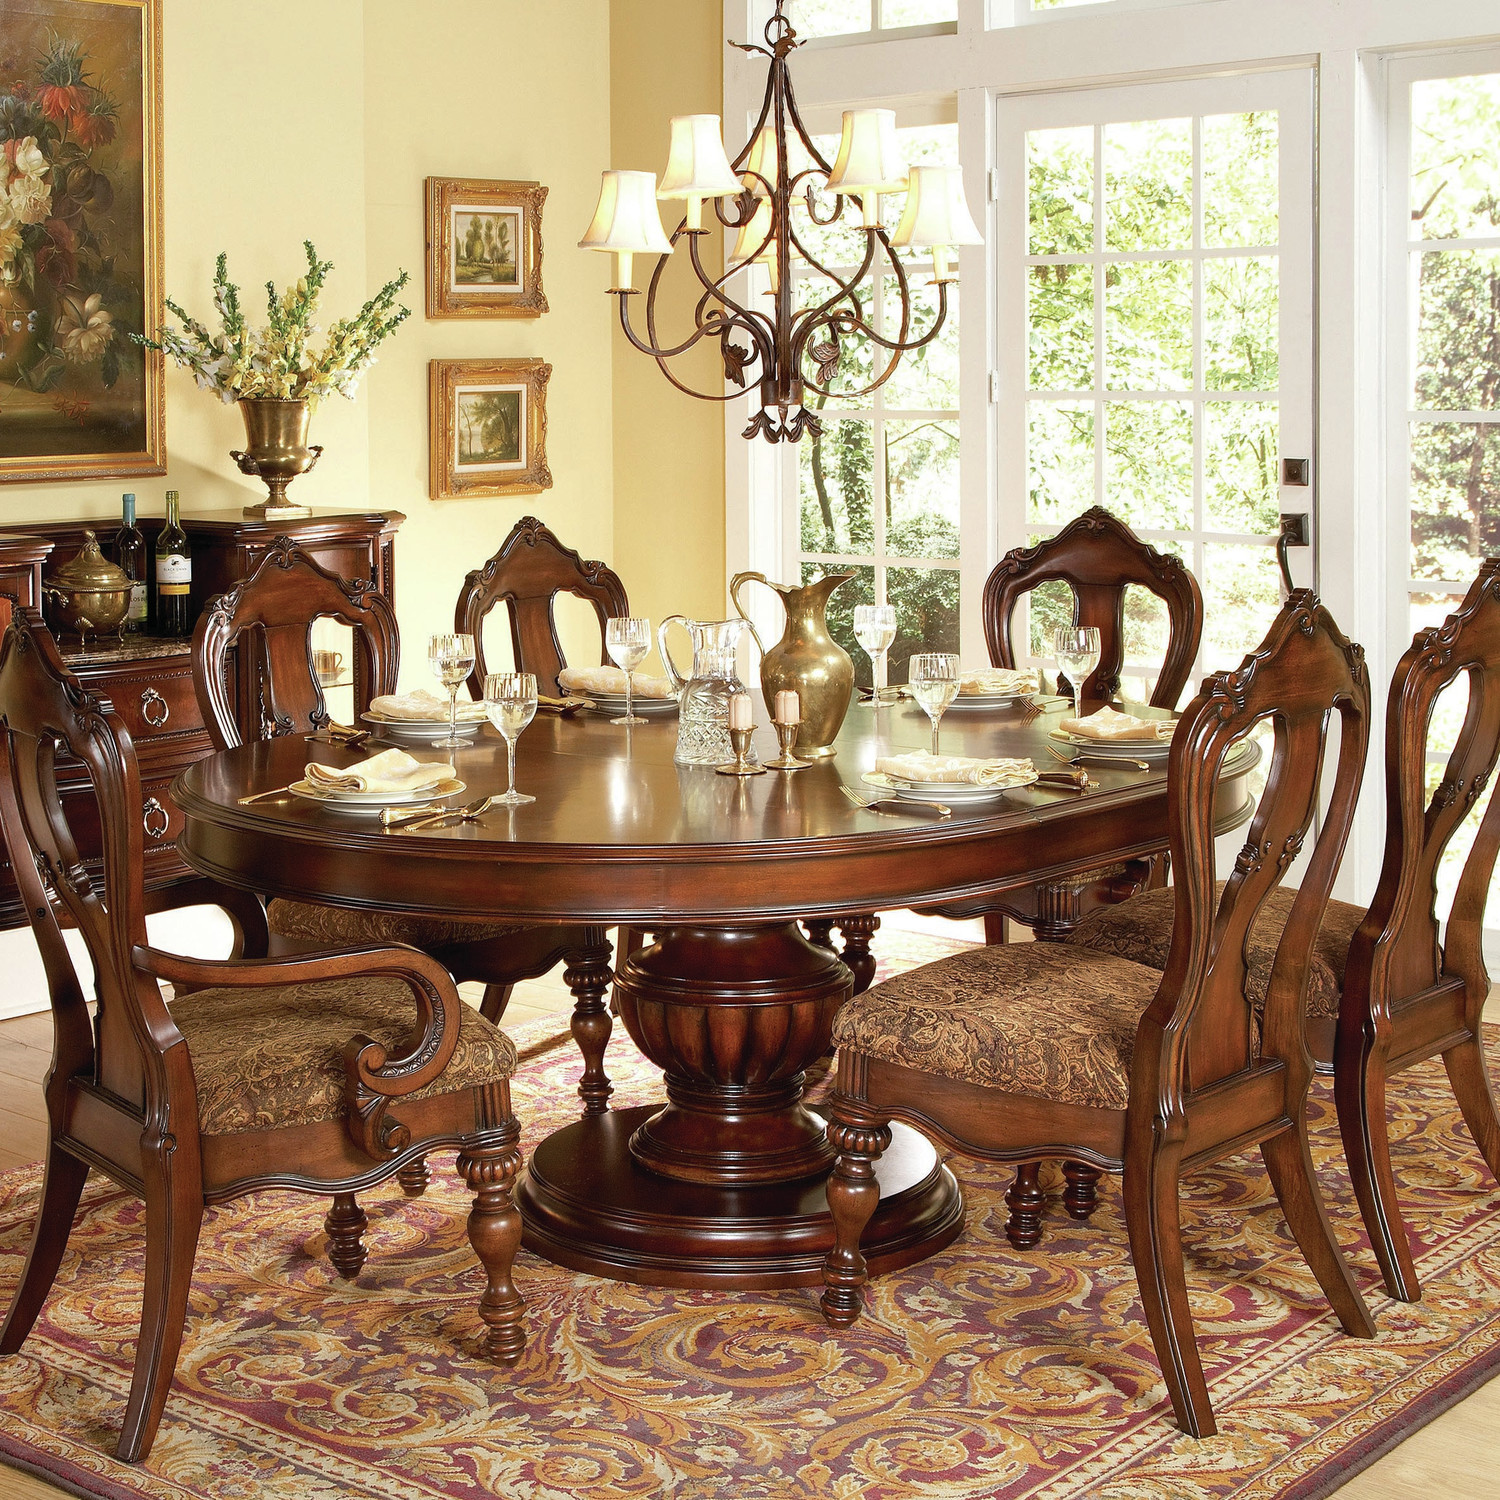 Round Dining Room Sets For 6: Getting A Round Dining Room Table For 6 By Your Own